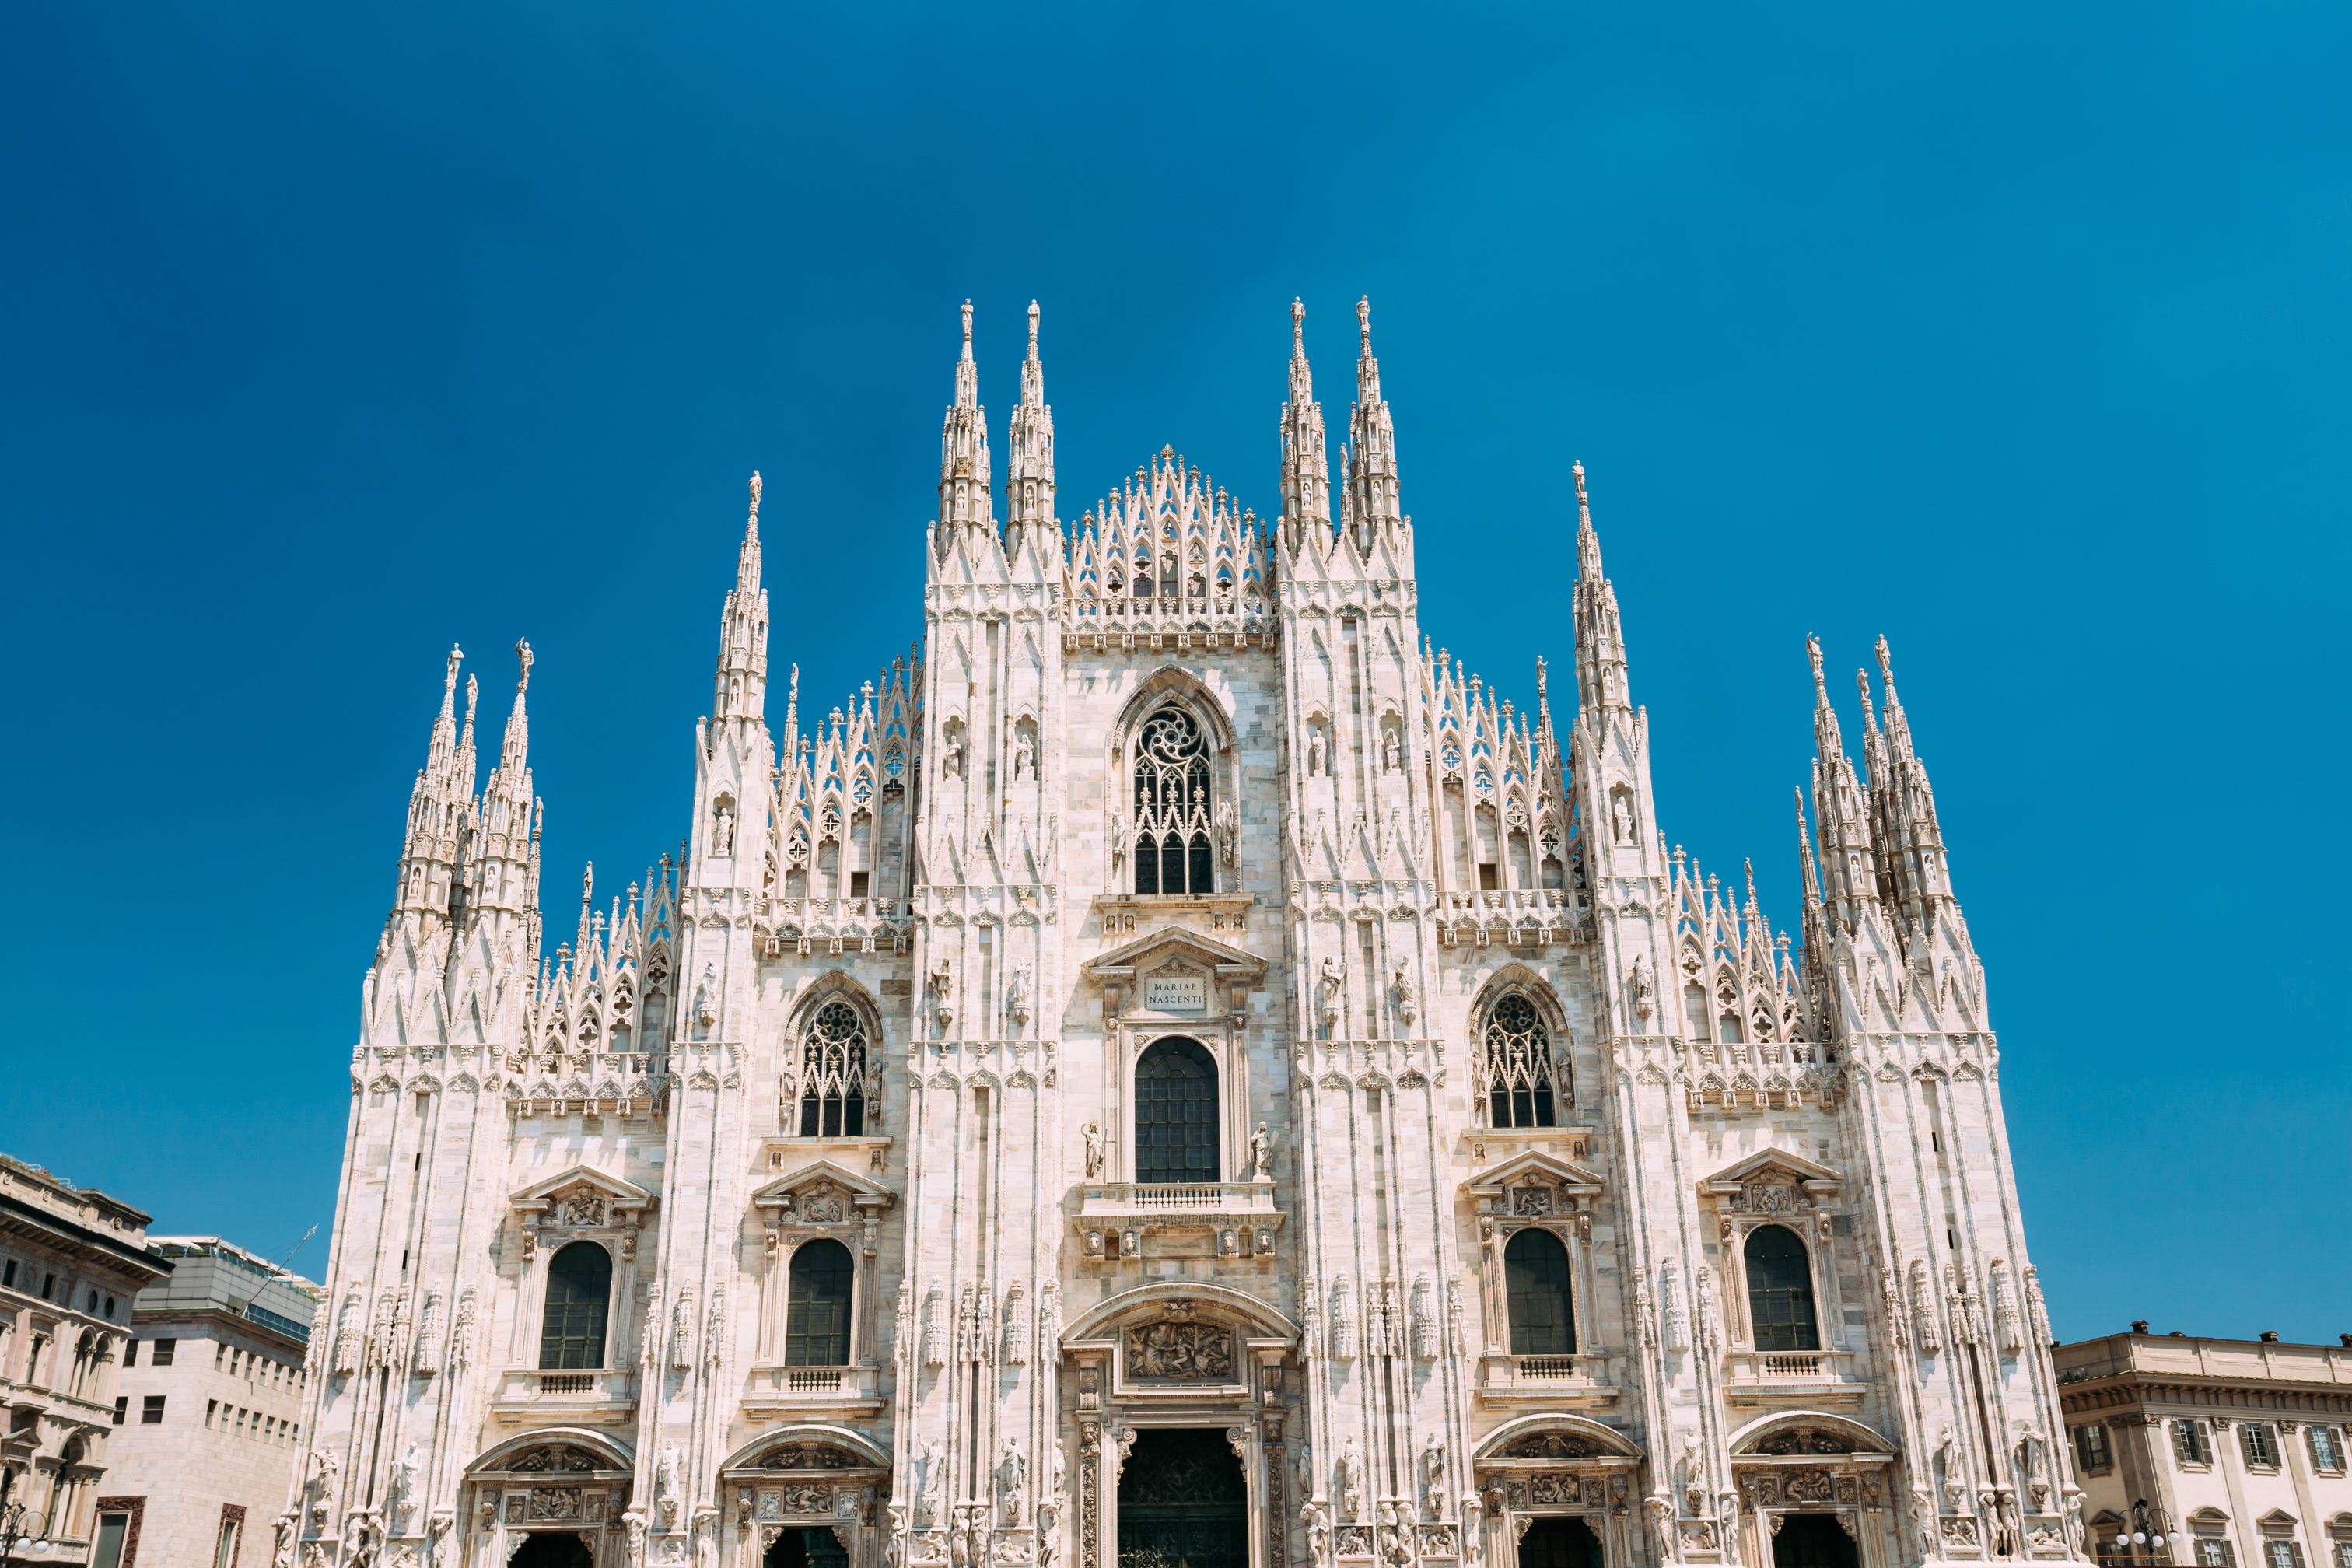 milan-cathedral-or-duomo-di-milano-is-the-cathedra-PP6J9KF.jpg